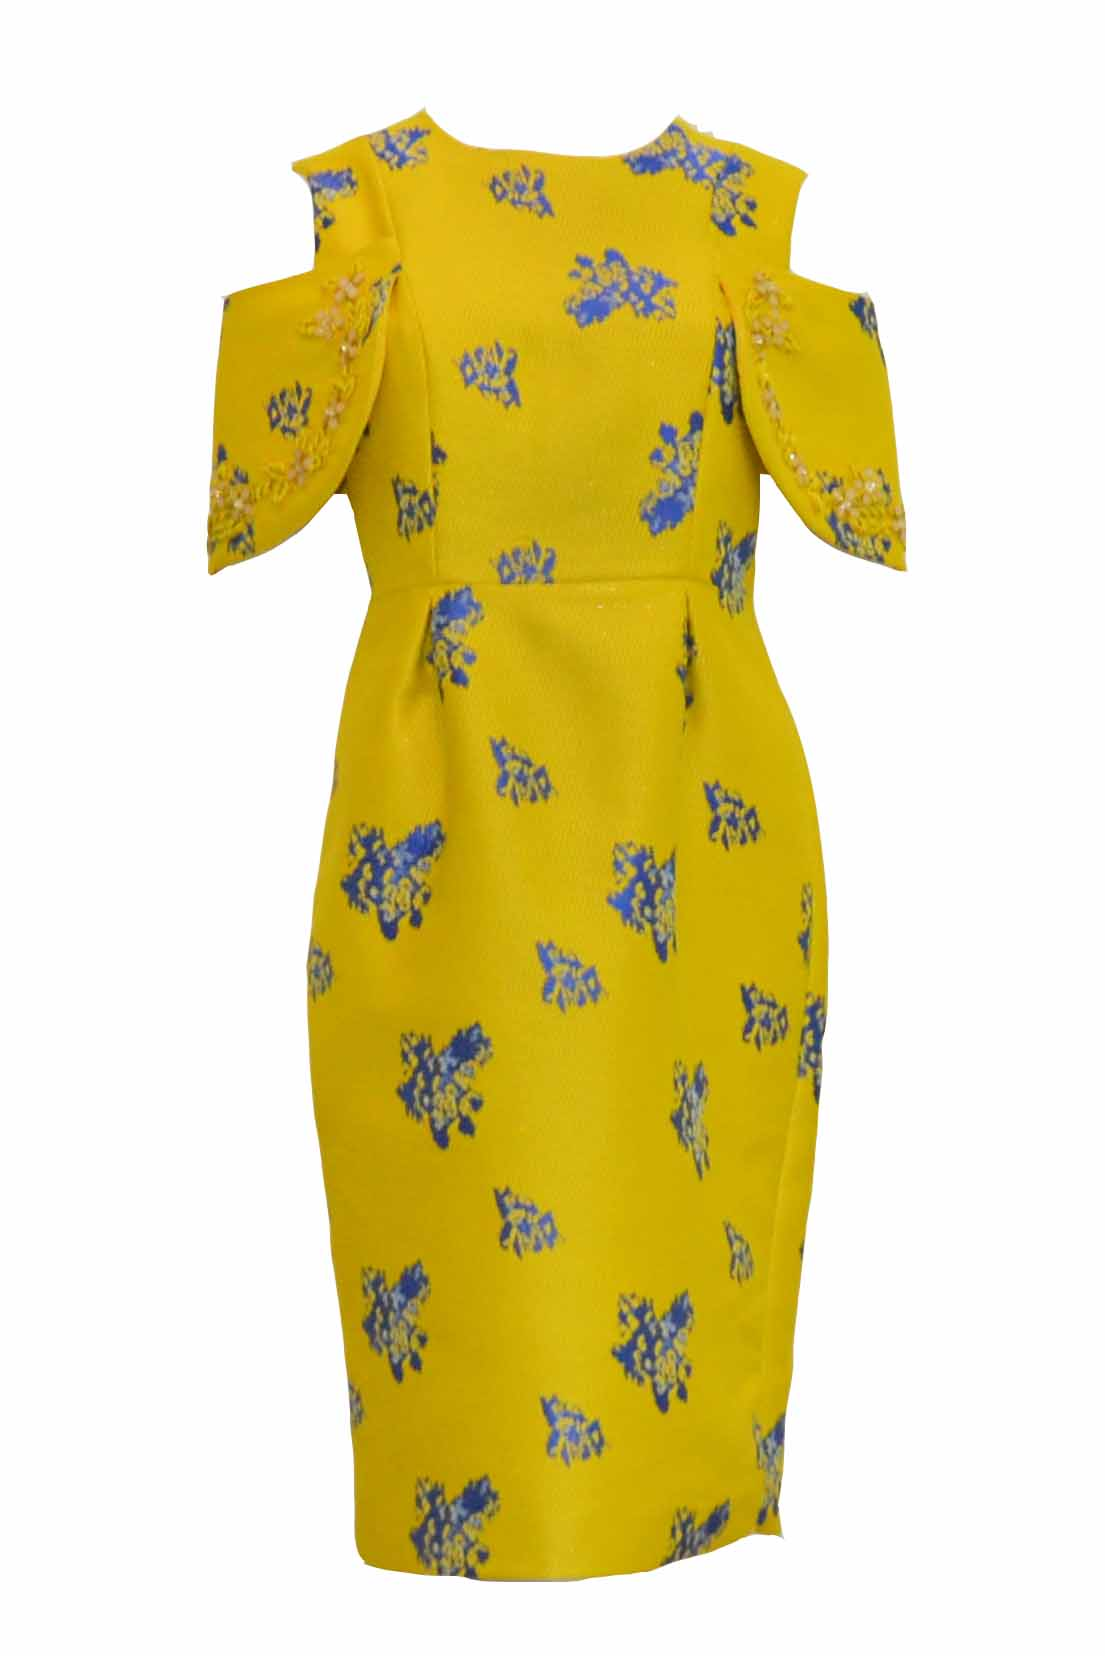 Rent: Private Label - Yellow Jacquard Sleeveless Cold Shoulder Cocktail Dress